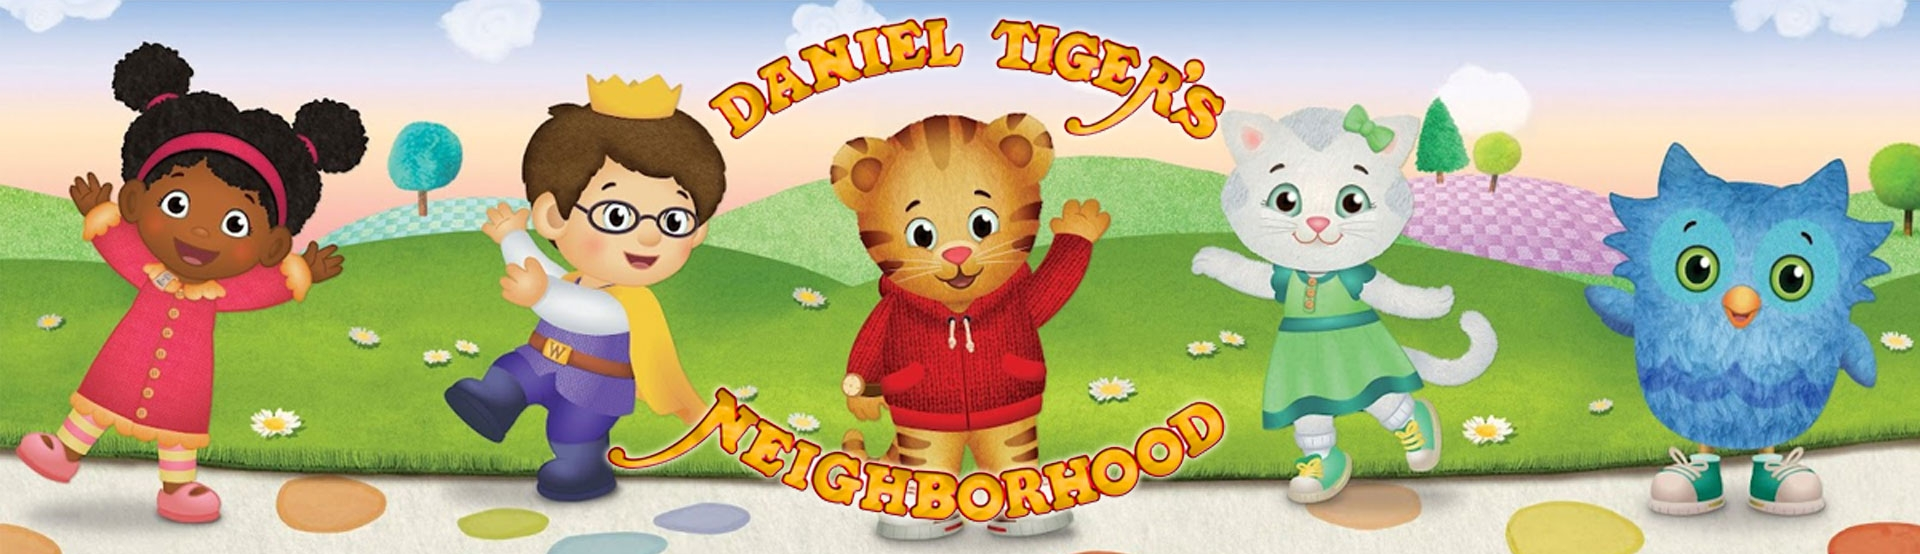 being thankful coloring pages - 134 daniel tiger s neighborhood